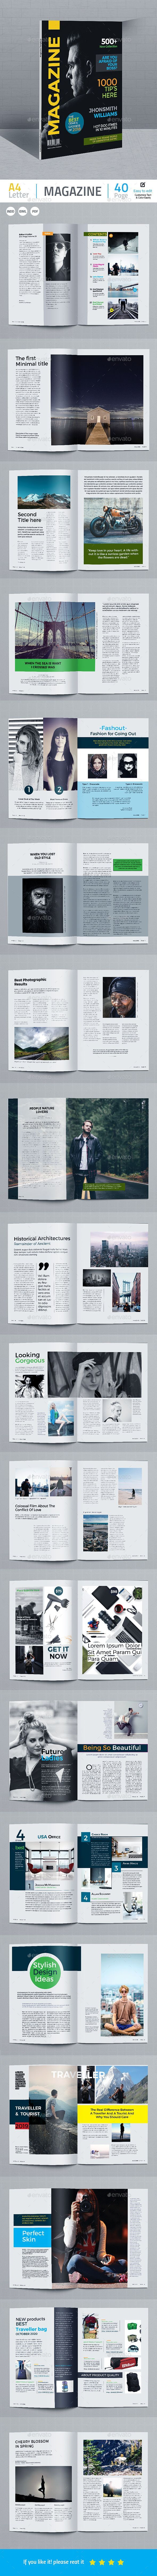 Multipurpose Magazine Template — InDesign INDD #easy #clean layout • Download ➝ https://graphicriver.net/item/multipurpose-magazine-template/18803354?ref=pxcr